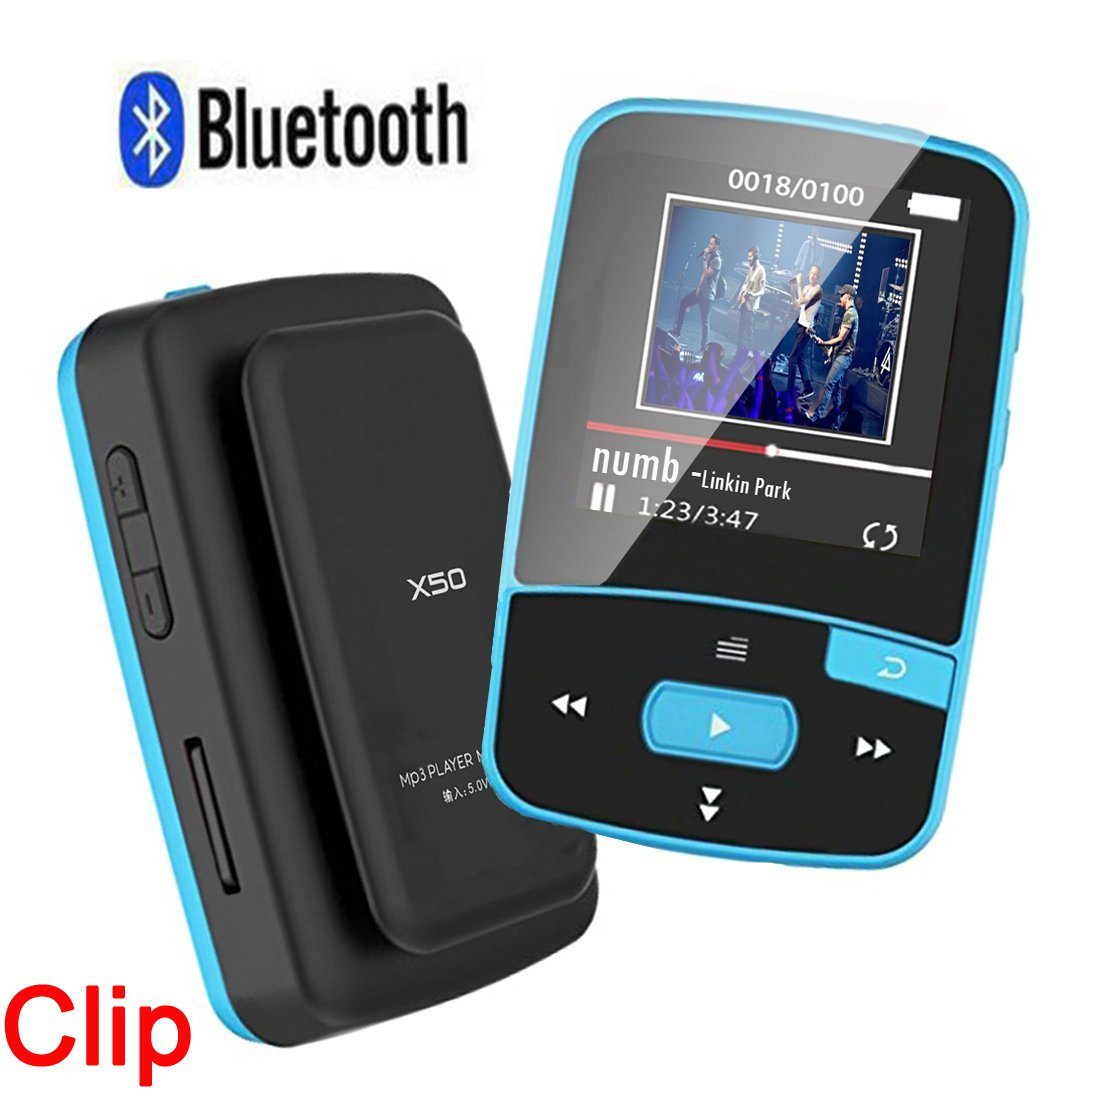 HONGYU RX50 8GB Clip Sport Bluetooth MP3 Player for Running with Clip+ MP3 FM Radio Record Lossless Sound Portable Music Player (Support up to 64GB- Blue)